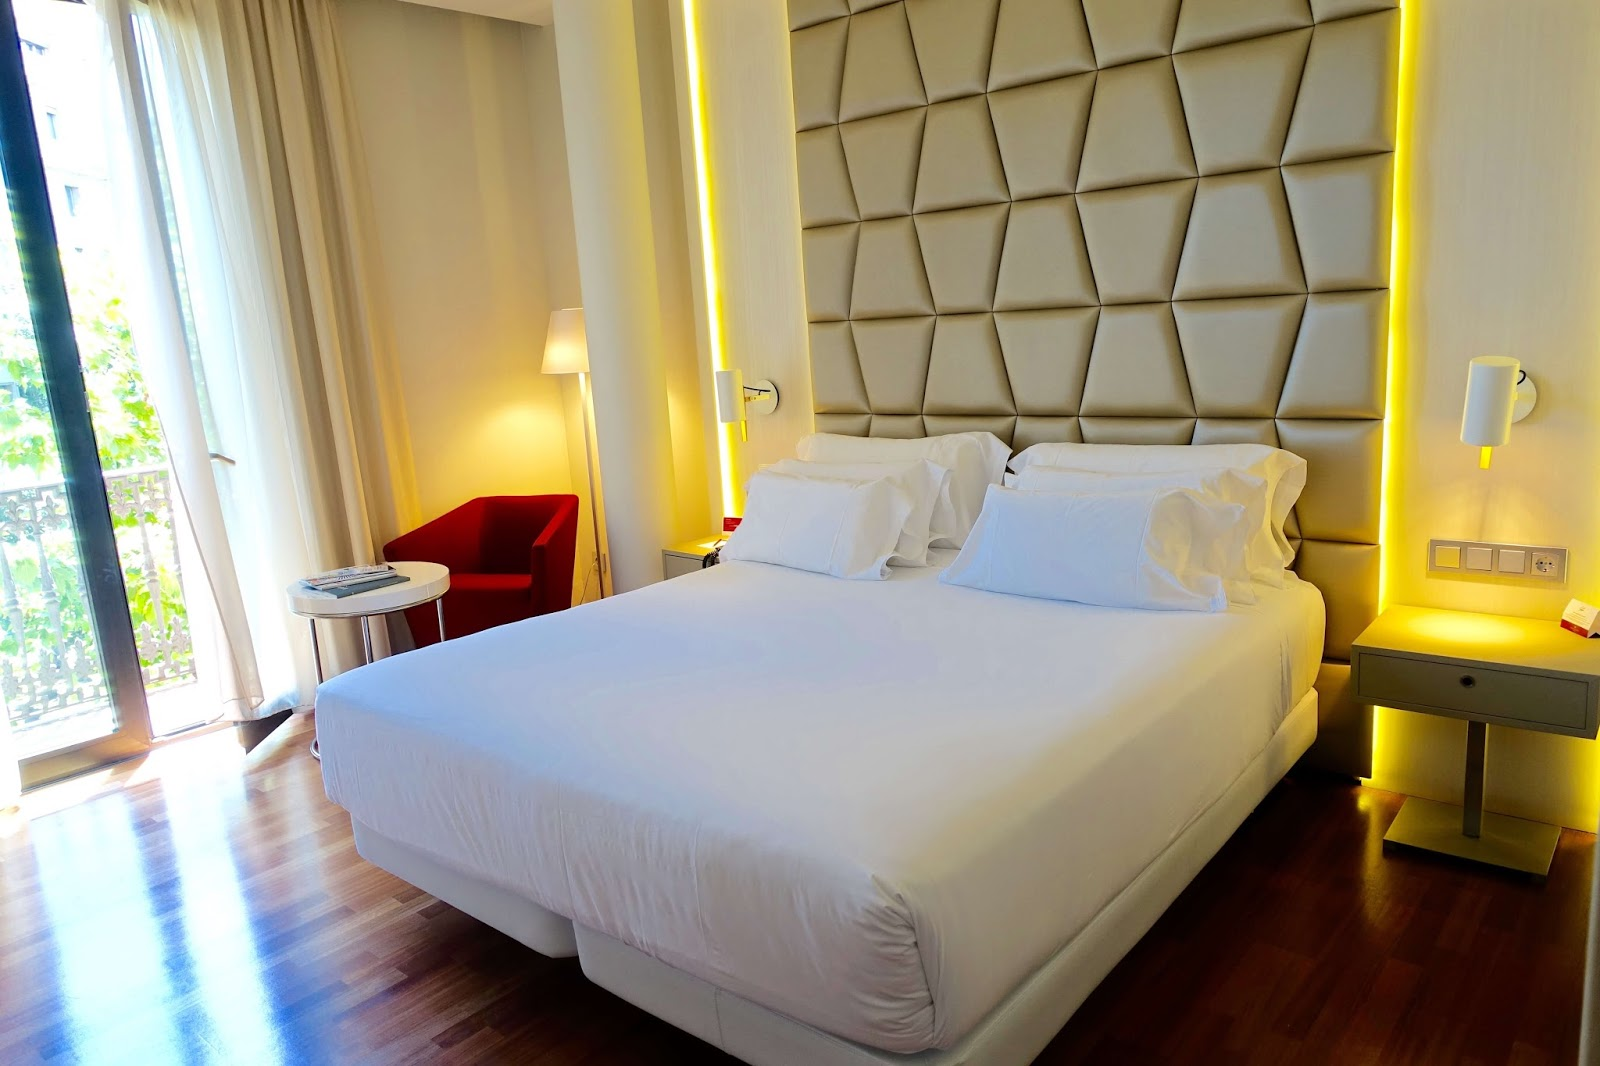 hotels near Plaza de Cataluña in Barcelona\